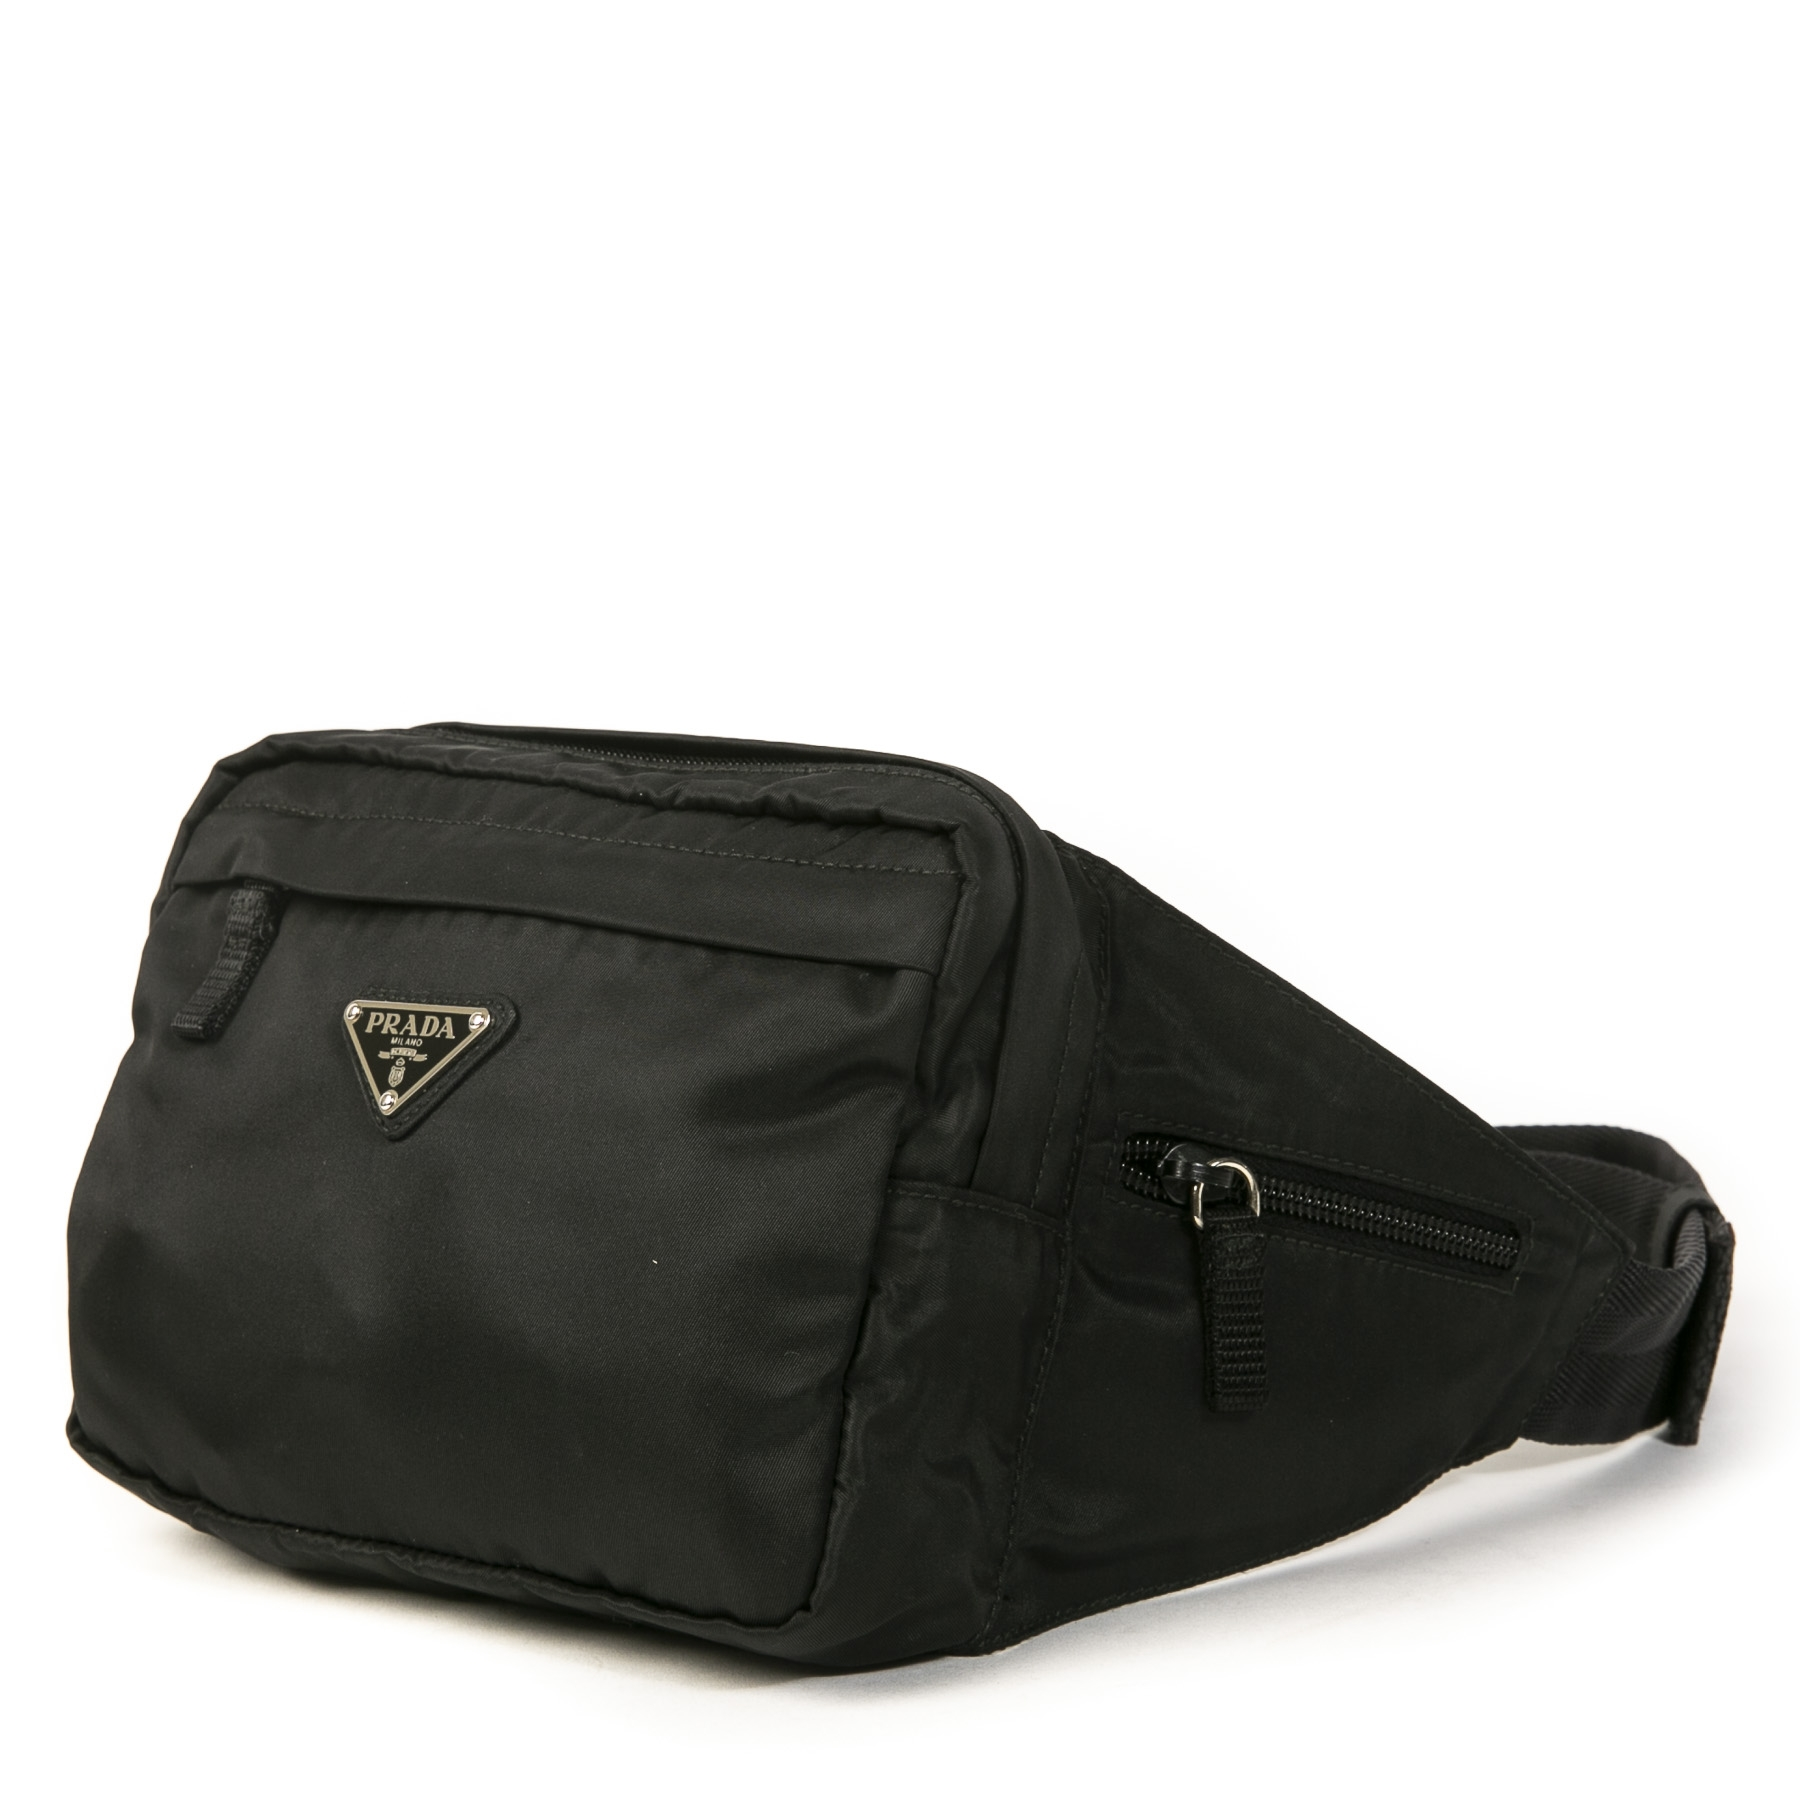 Authentique seconde main vintage Prada Black Nylon Belt Bag achète en ligne webshop LabelLOV